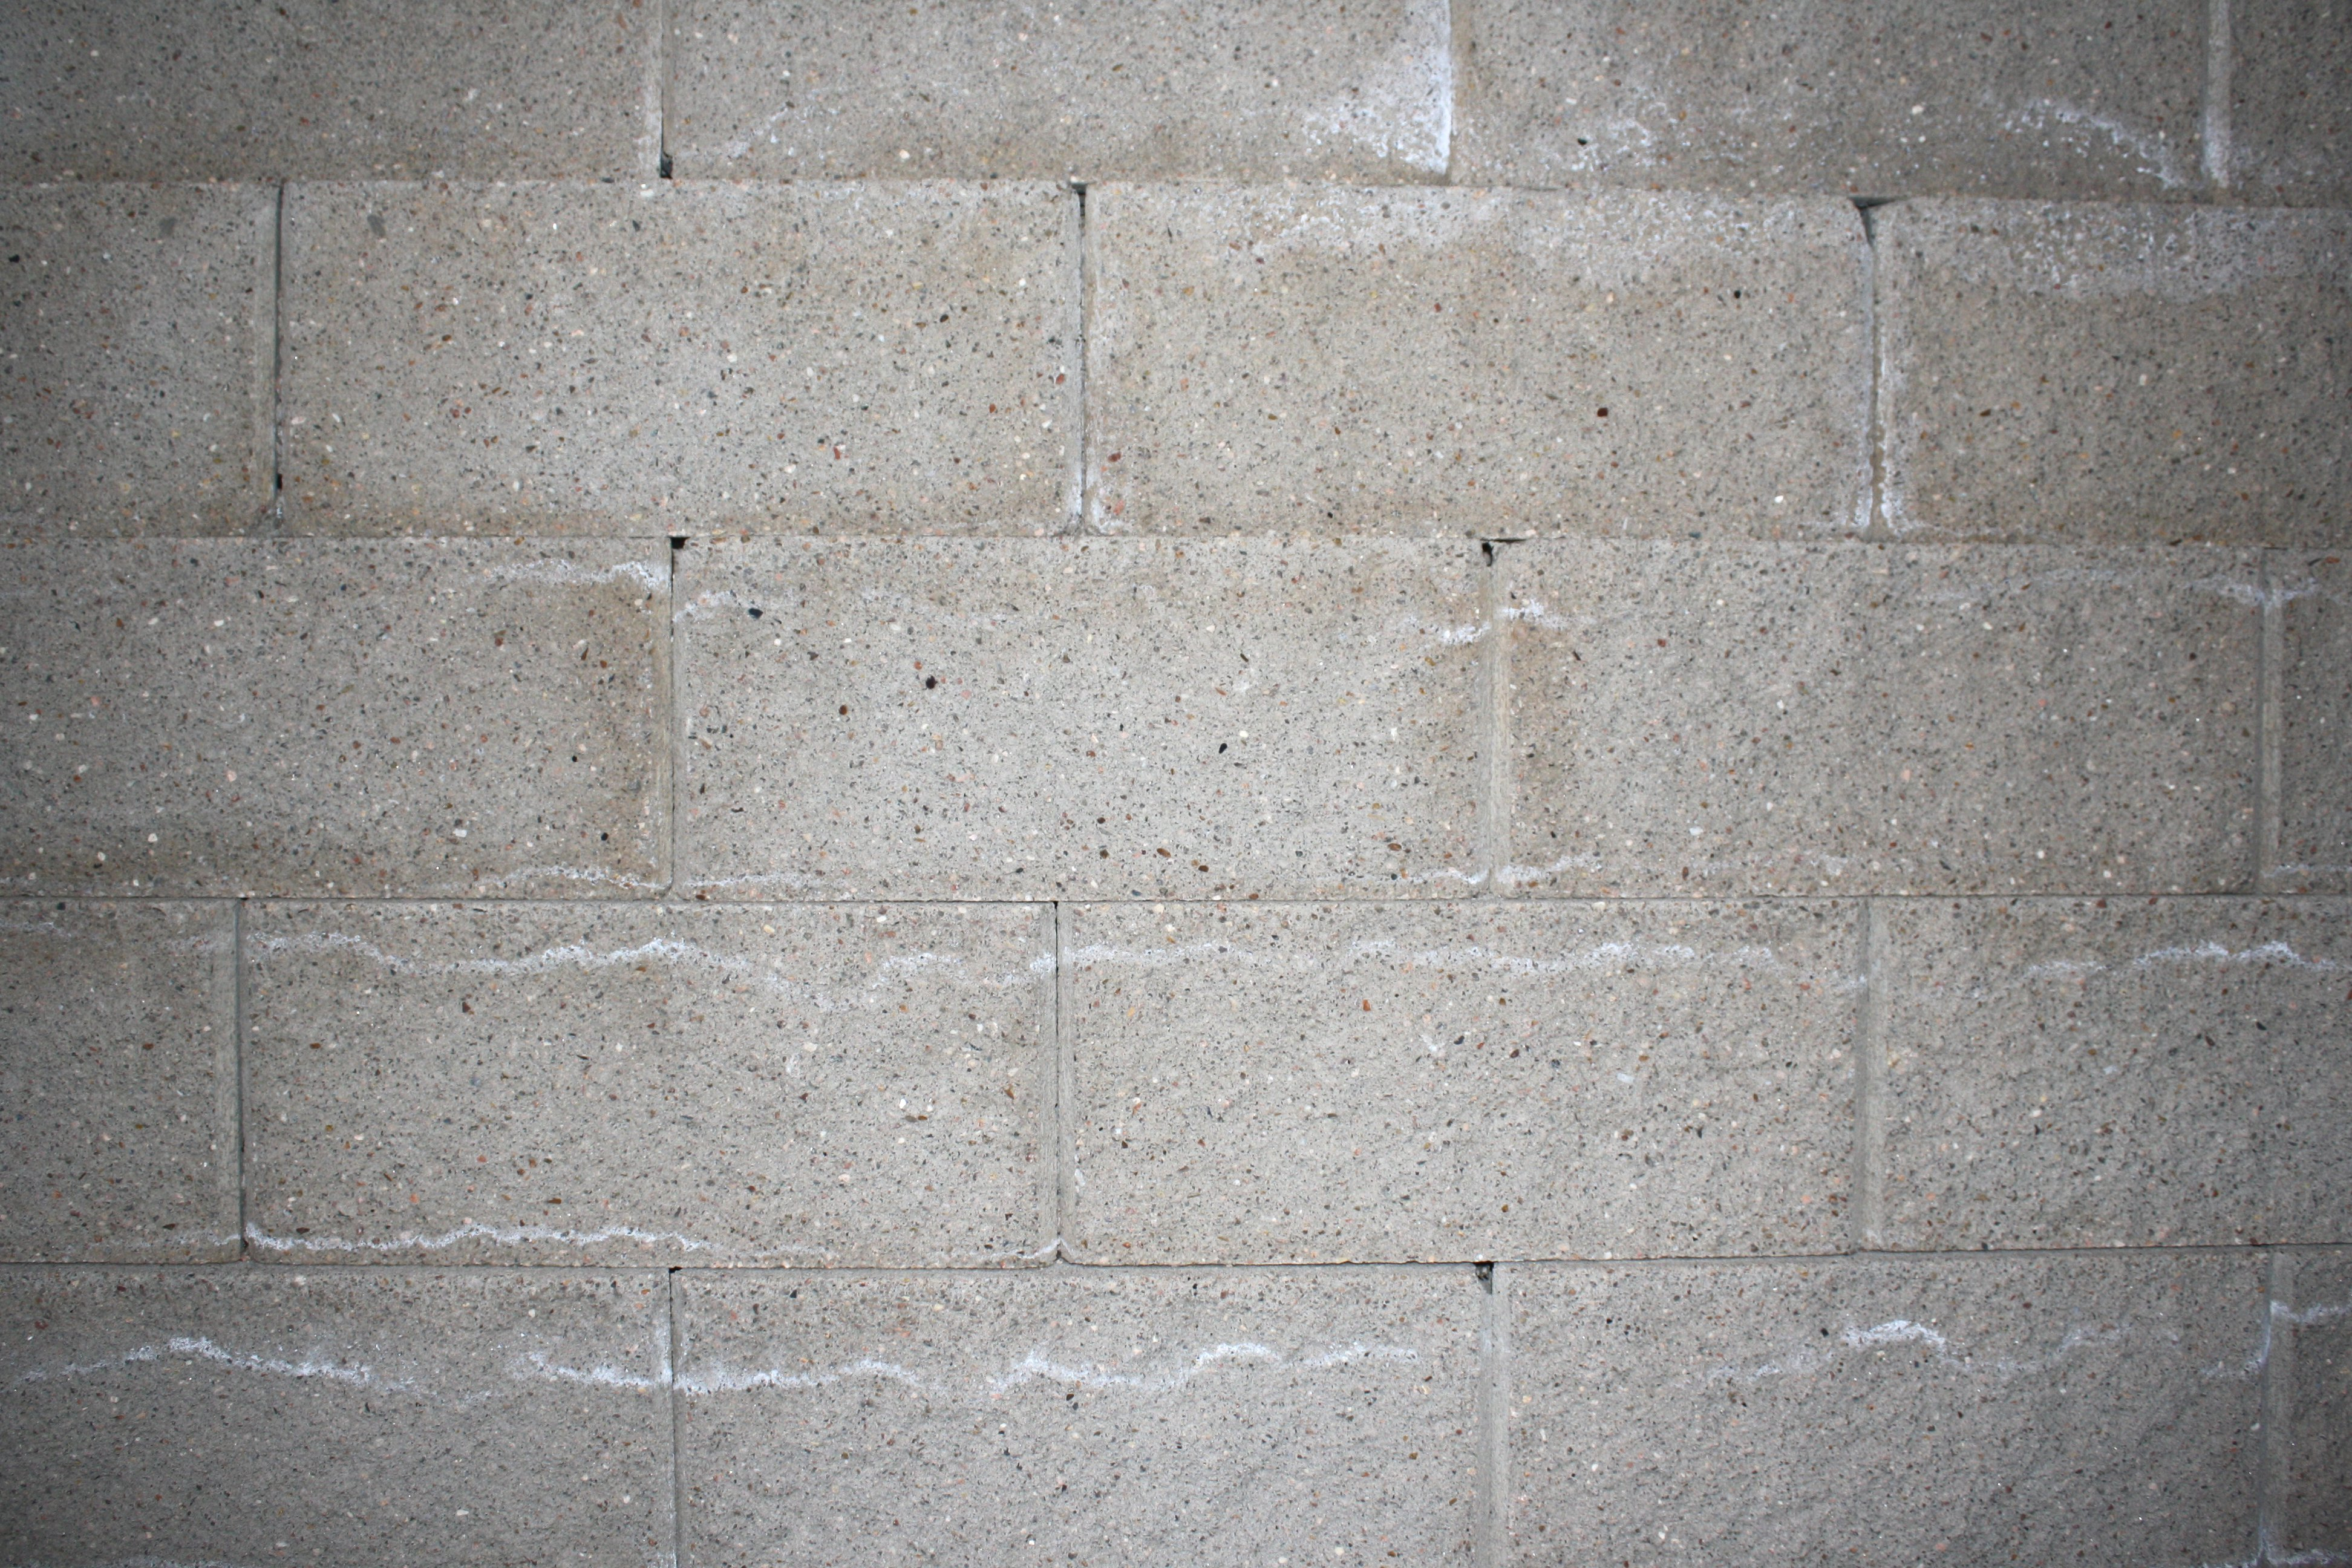 Gray Concrete or Cinder Block Wall Texture Picture Photograph 3888x2592